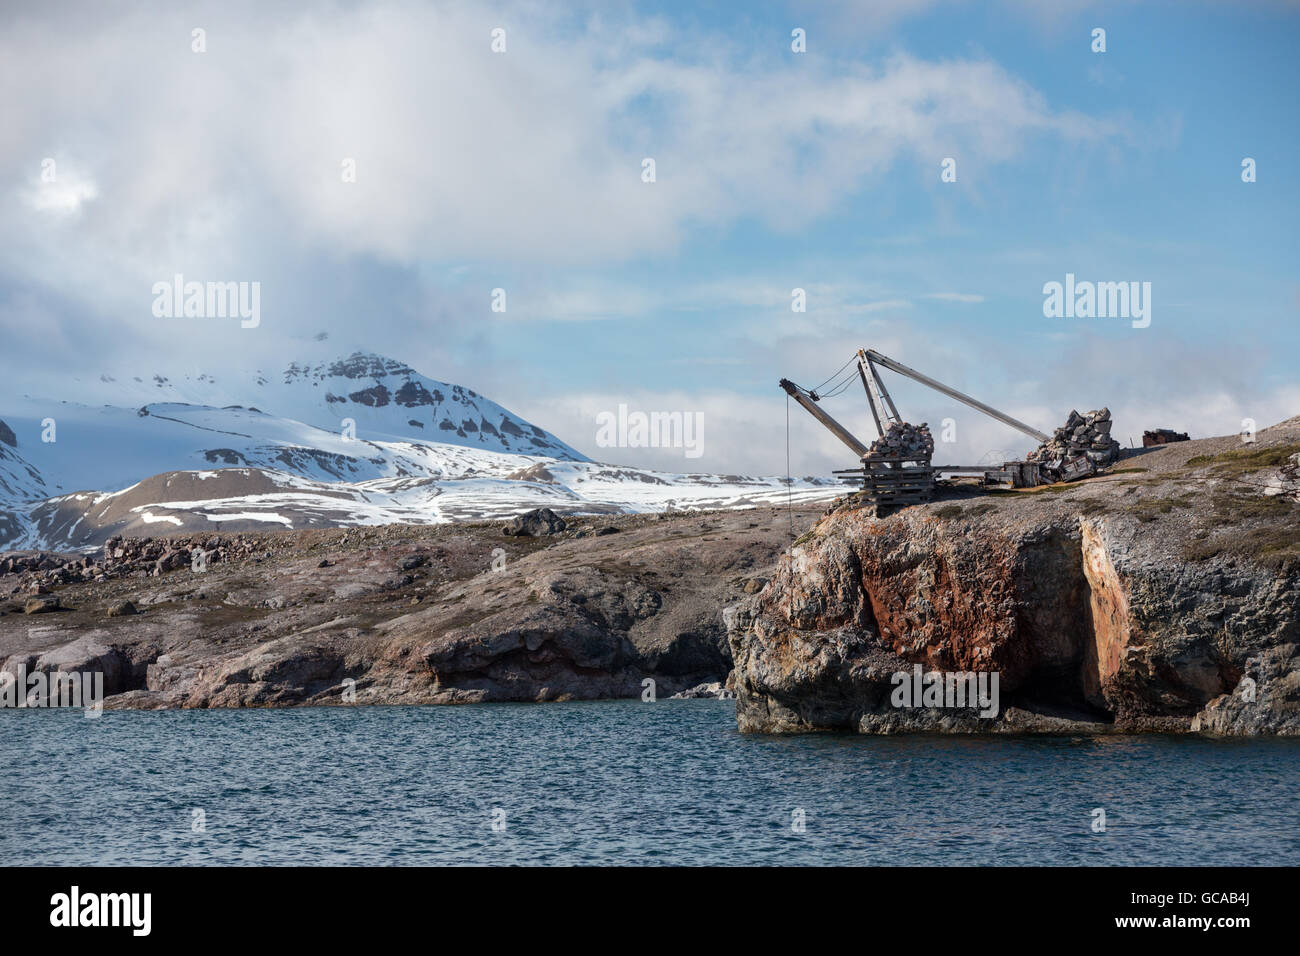 Disused crane at the ruins of the marble quarry at Ny London, Kongsfjorden, Spitsbergen, Svalbard Islands, Norway - Stock Image